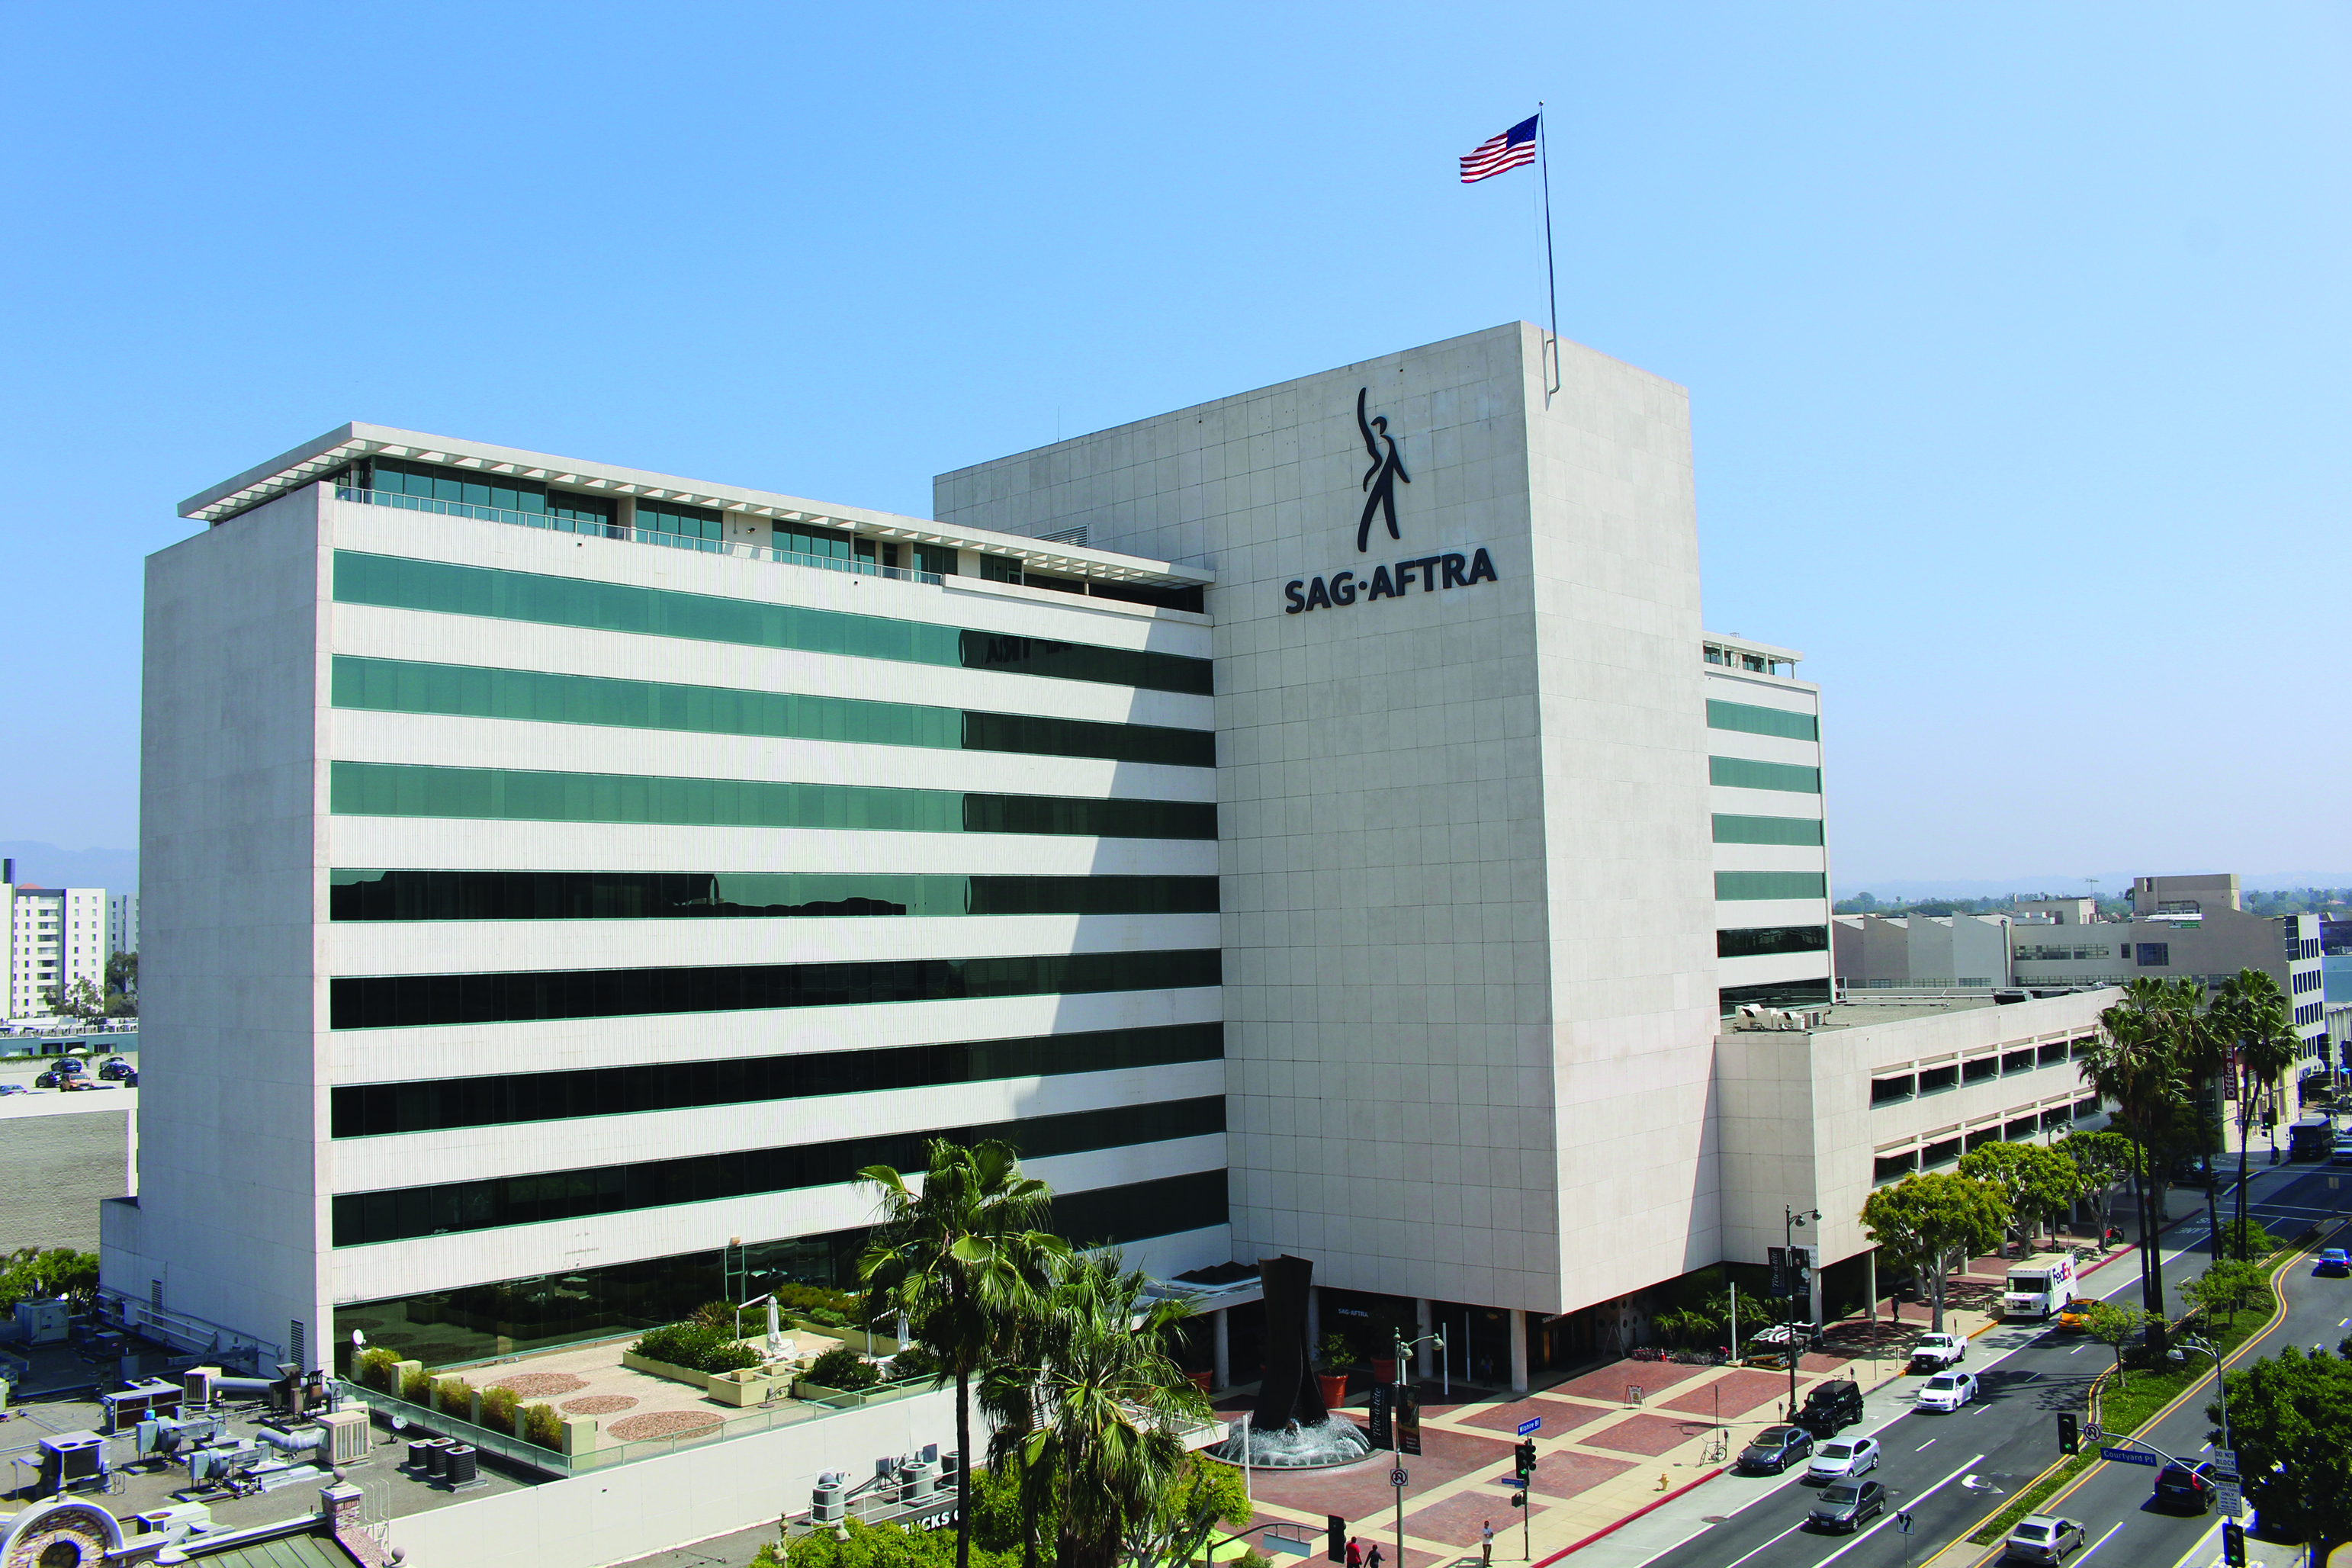 SAG-AFTRA building with new logo sign